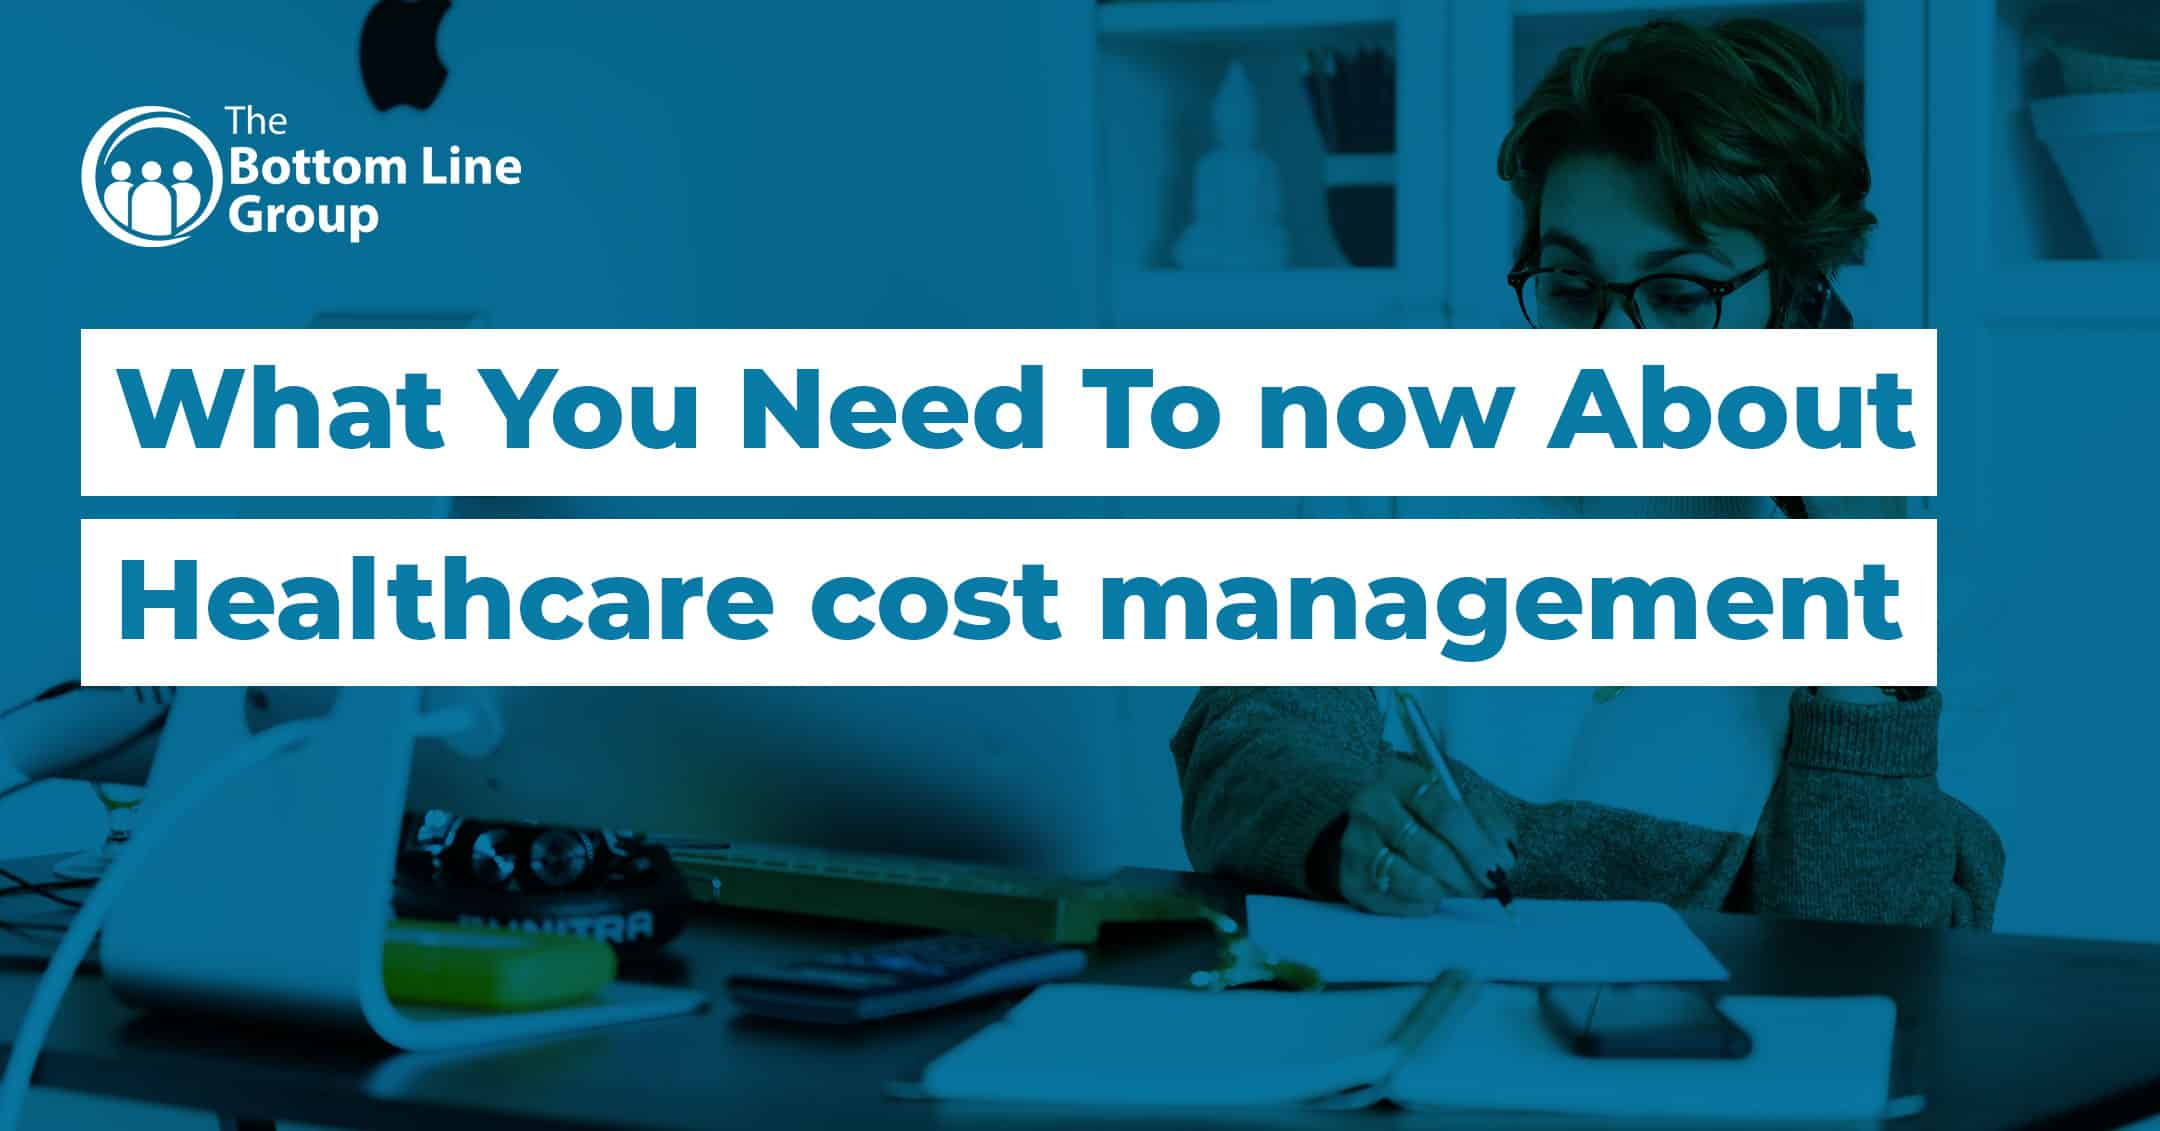 43-(What-You-Need-To-now-About-Healthcare-cost-management)